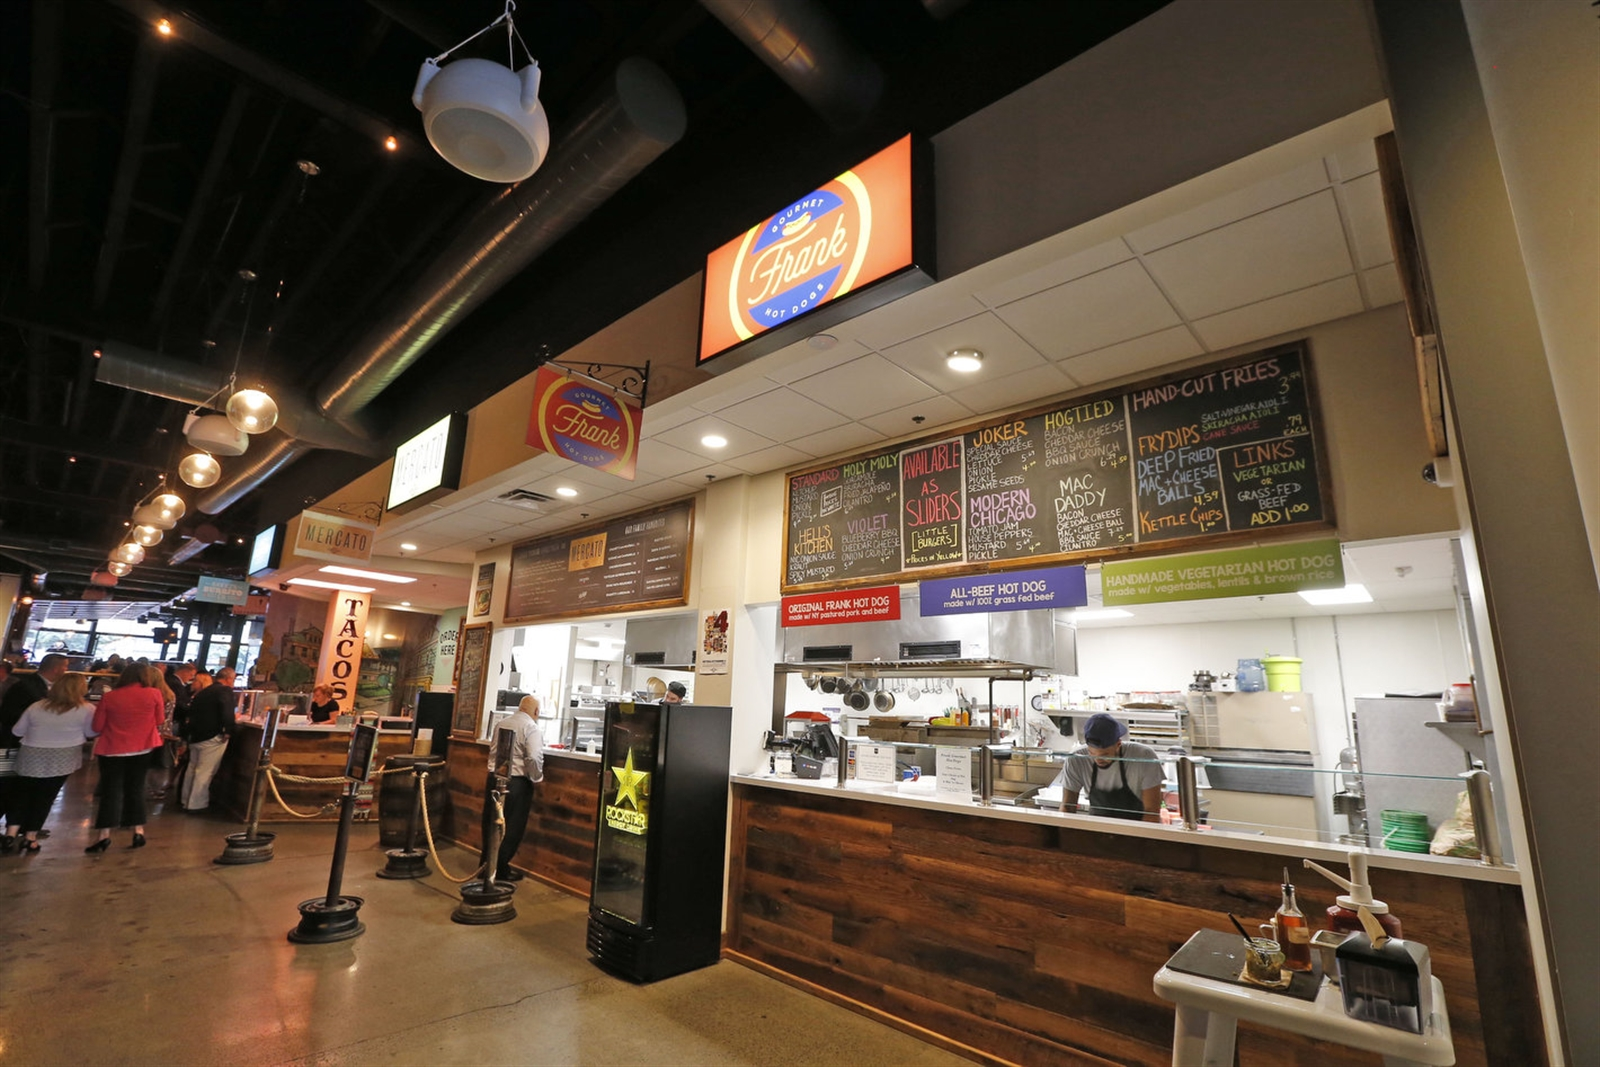 EXPO Market, at 617 Main St. in downtown Buffalo, houses five restaurants and a bar. Pictured is one of the newcomers, Frank Gourmet Hot Dogs.